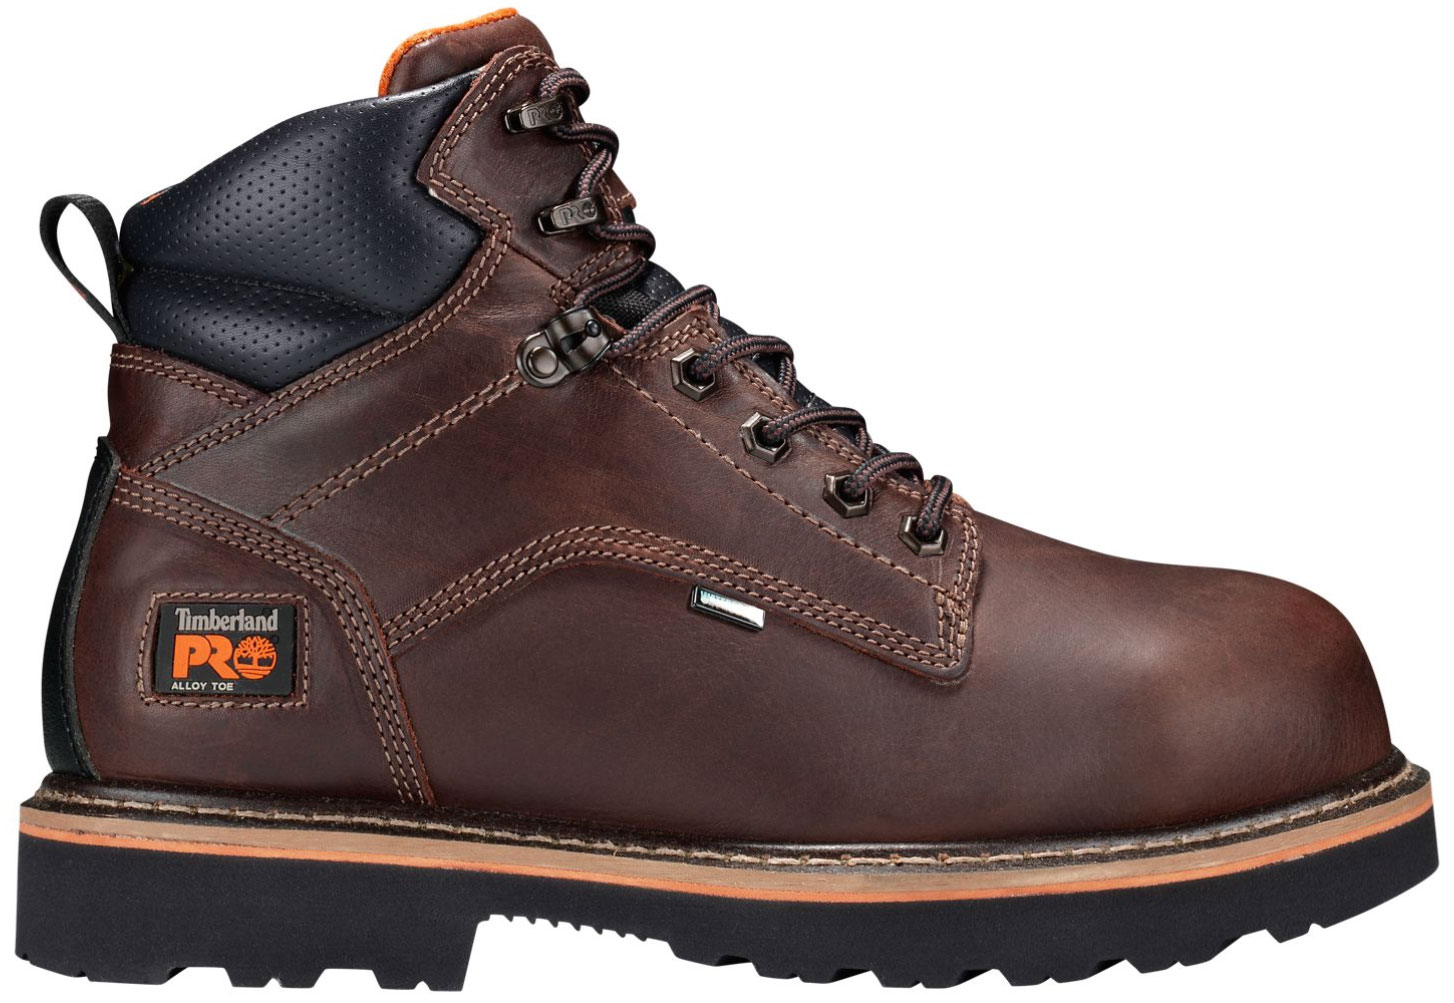 Timberland Men's Alloy Toe EH WP 6 Inch Boot